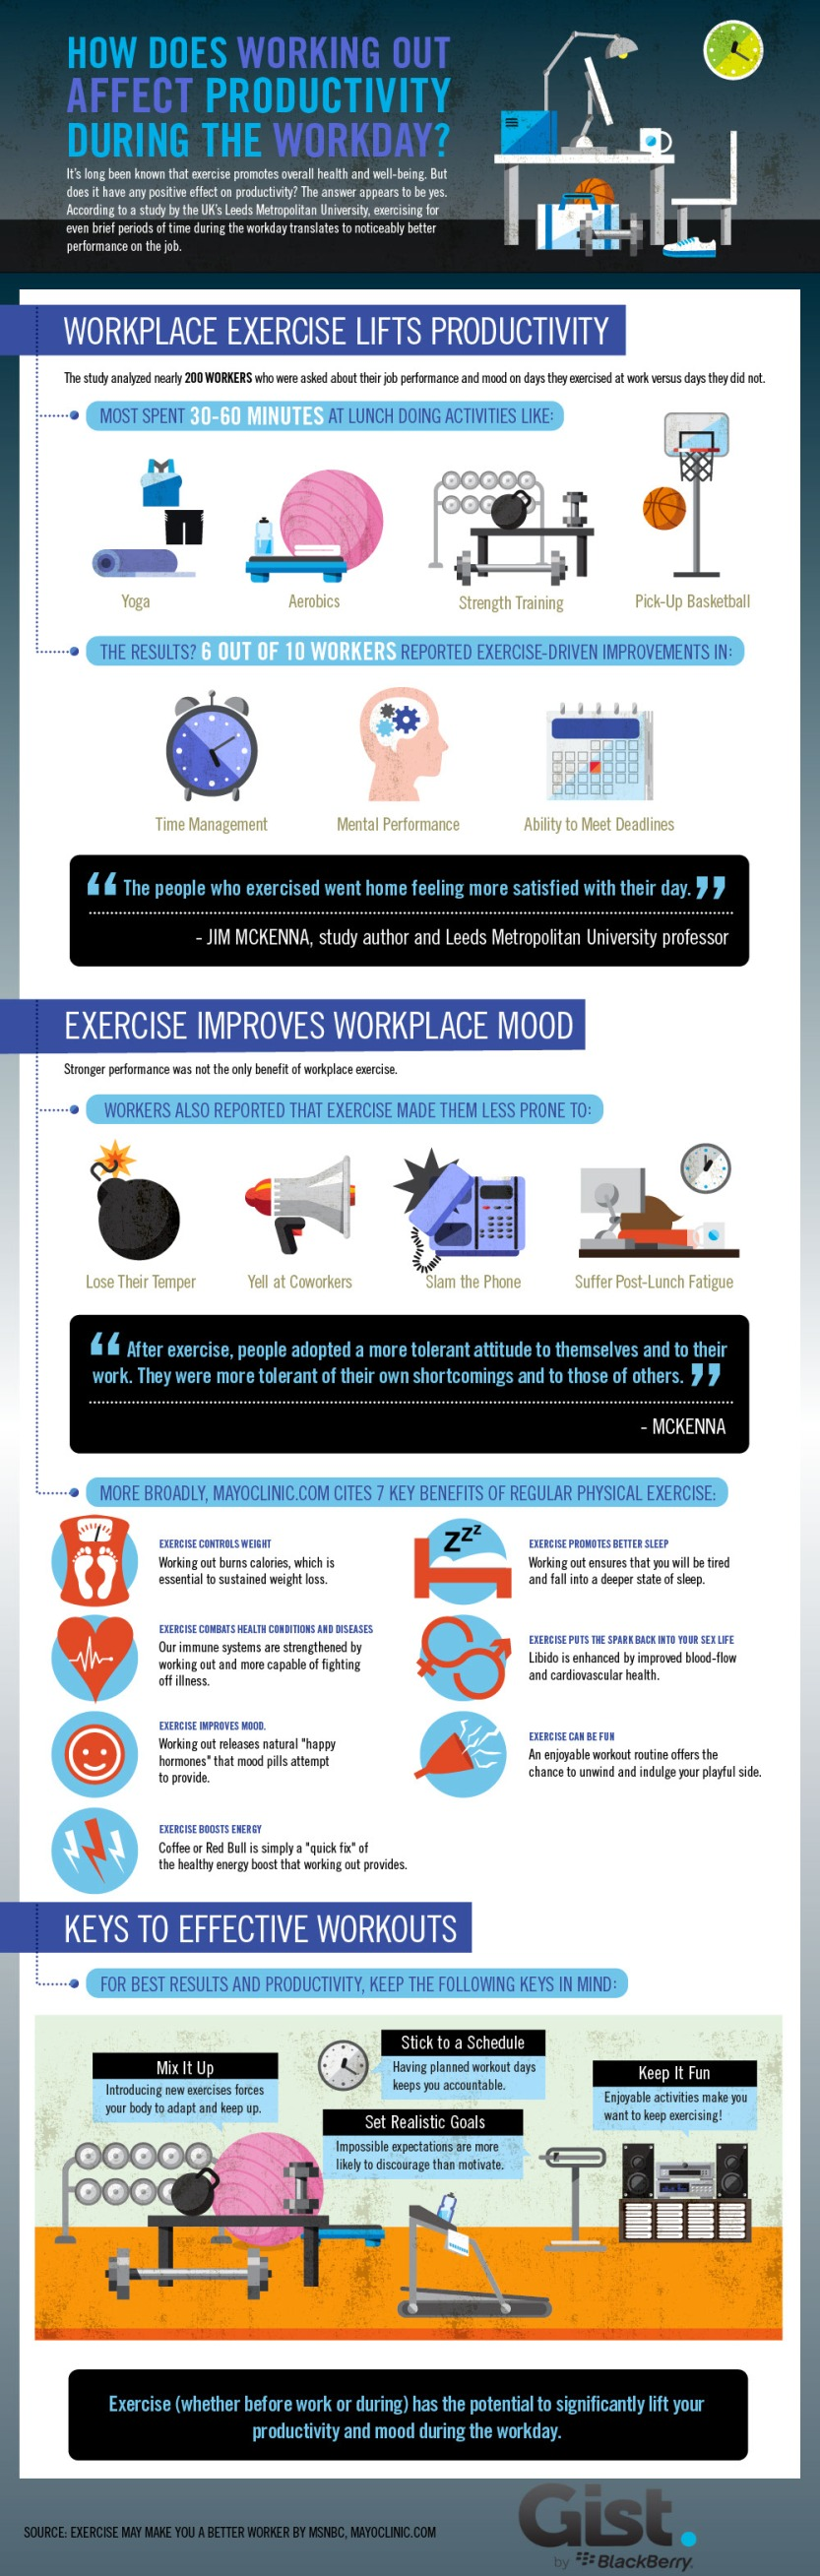 workingoutproductivityinfographic